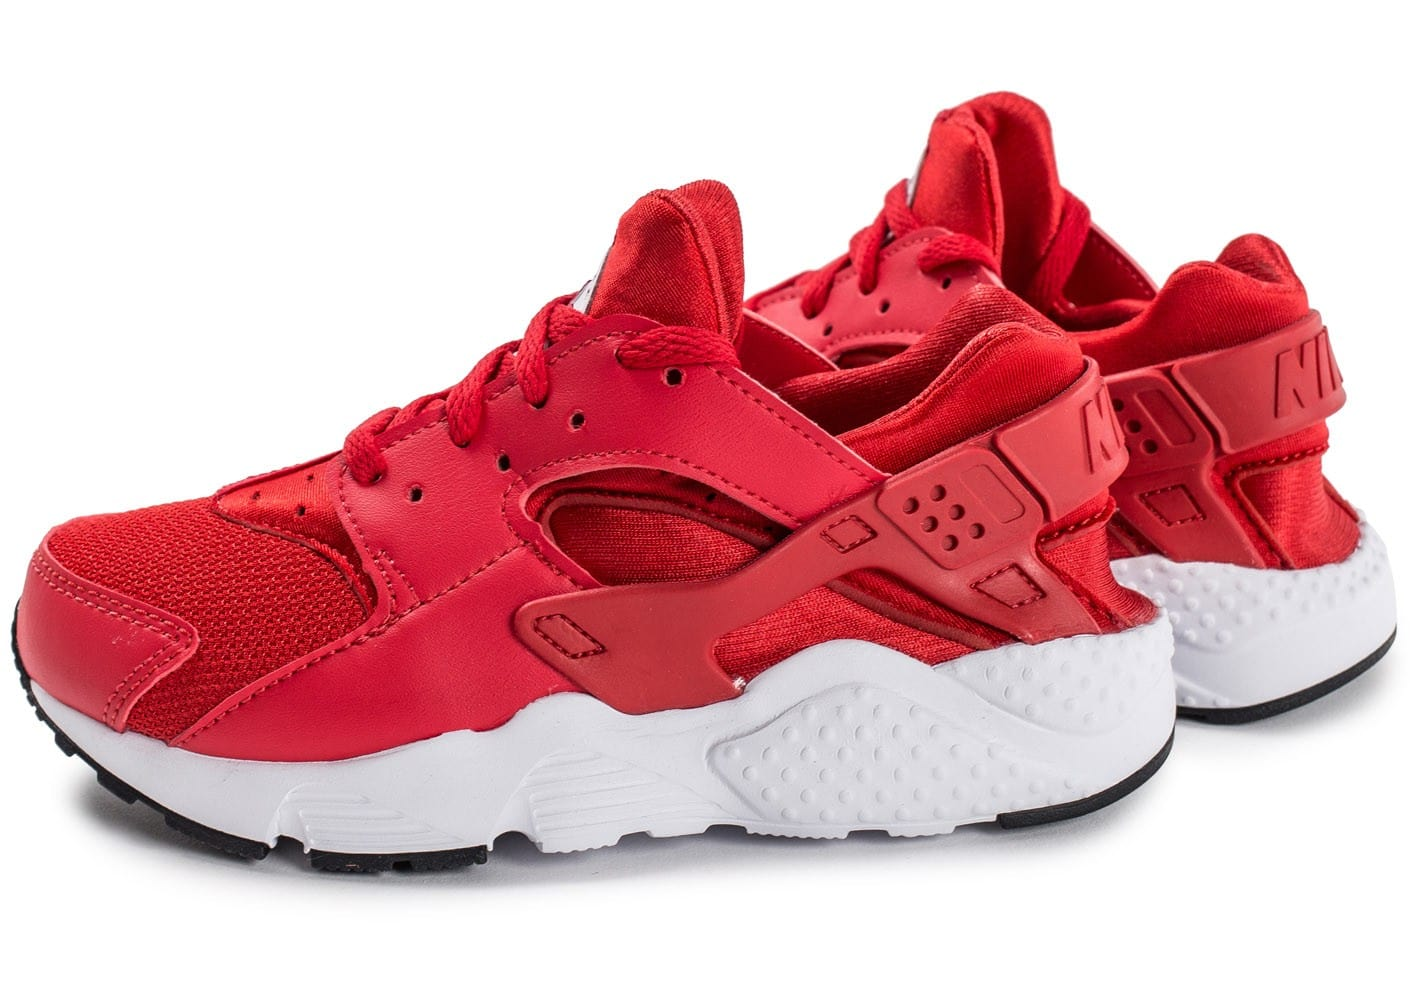 chaussures nike huarache rouge. Black Bedroom Furniture Sets. Home Design Ideas